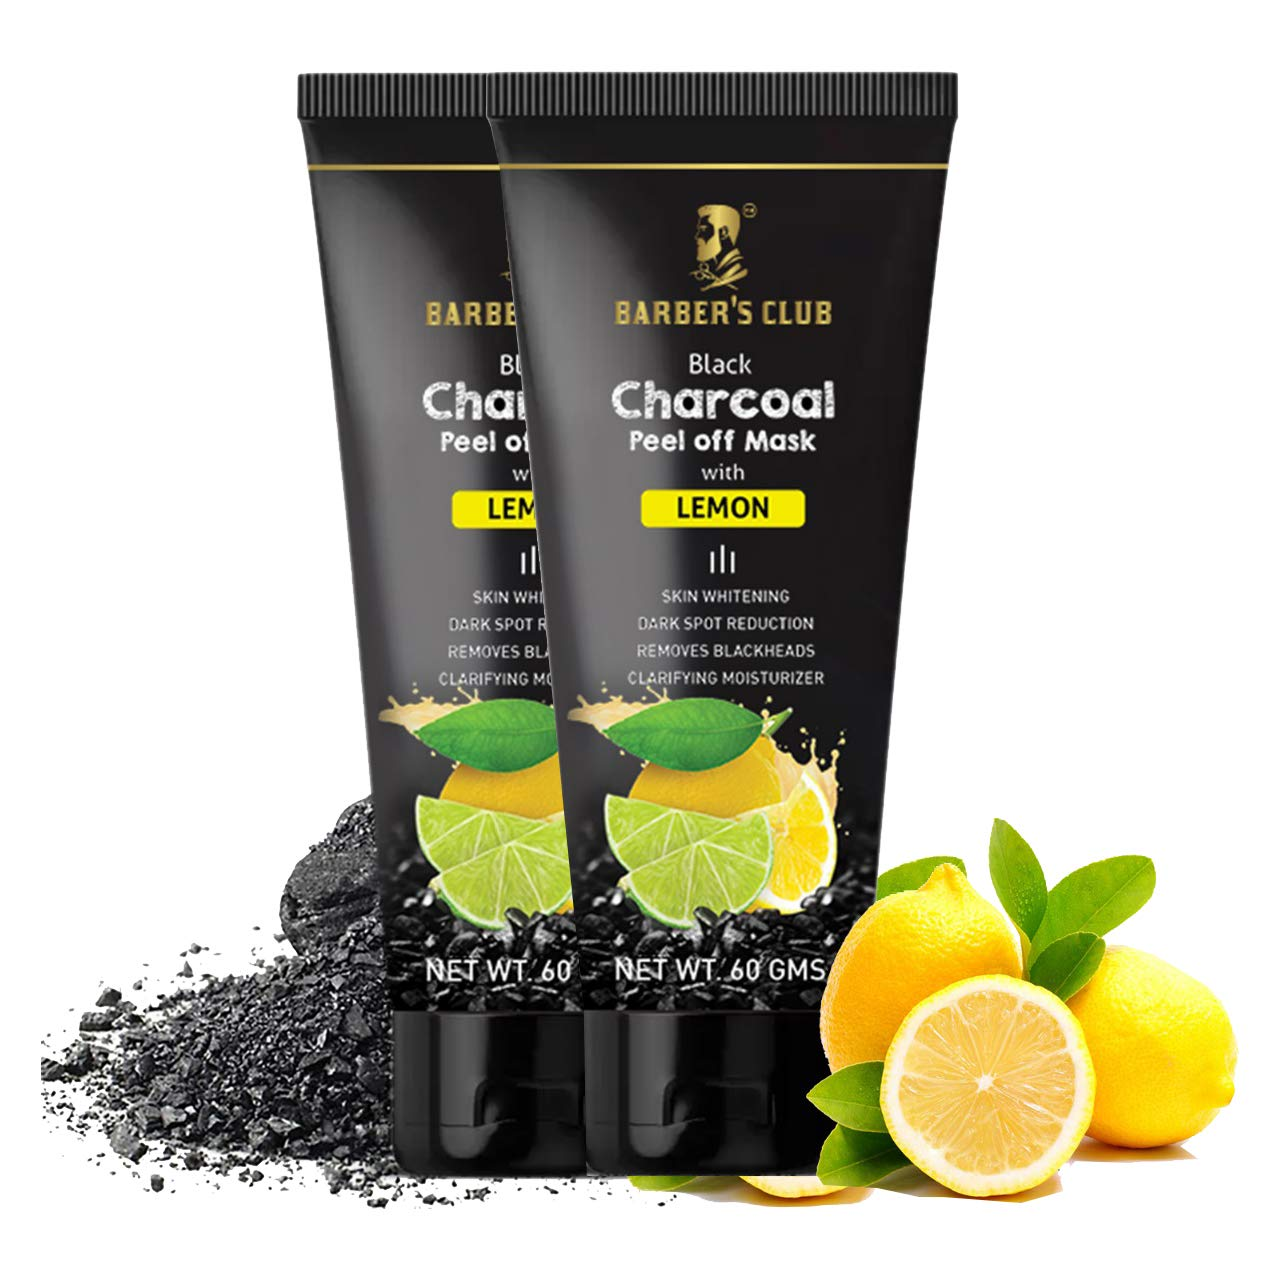 Barber's Club Black Charcoal Peel Off Mask with Lemon - 60 gms - Pack of 2